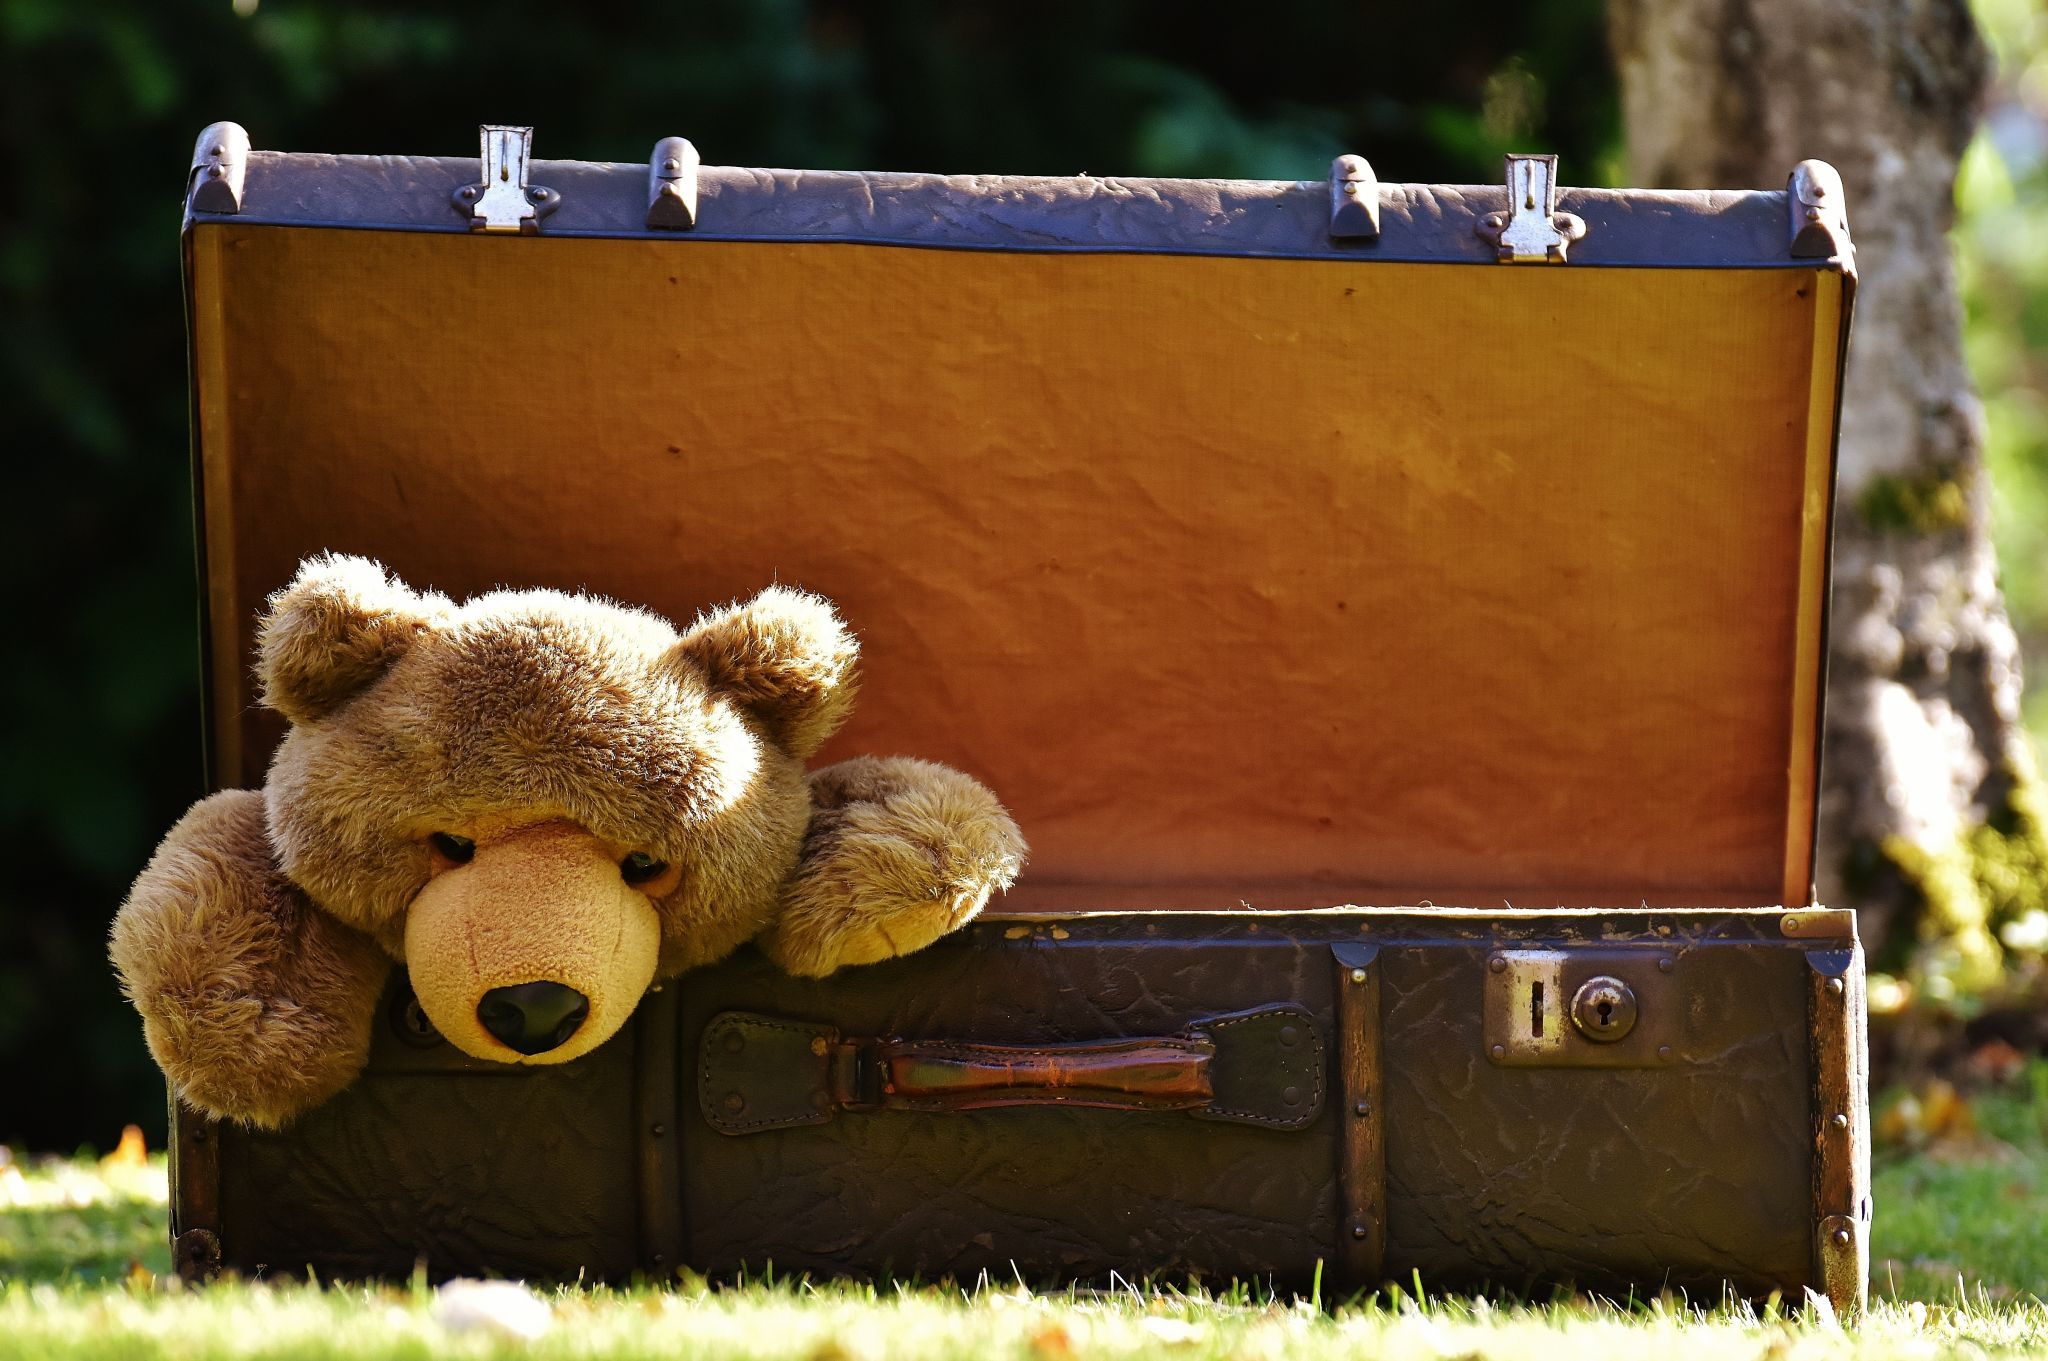 winter family travel health tips - teddy bear in a suitcase